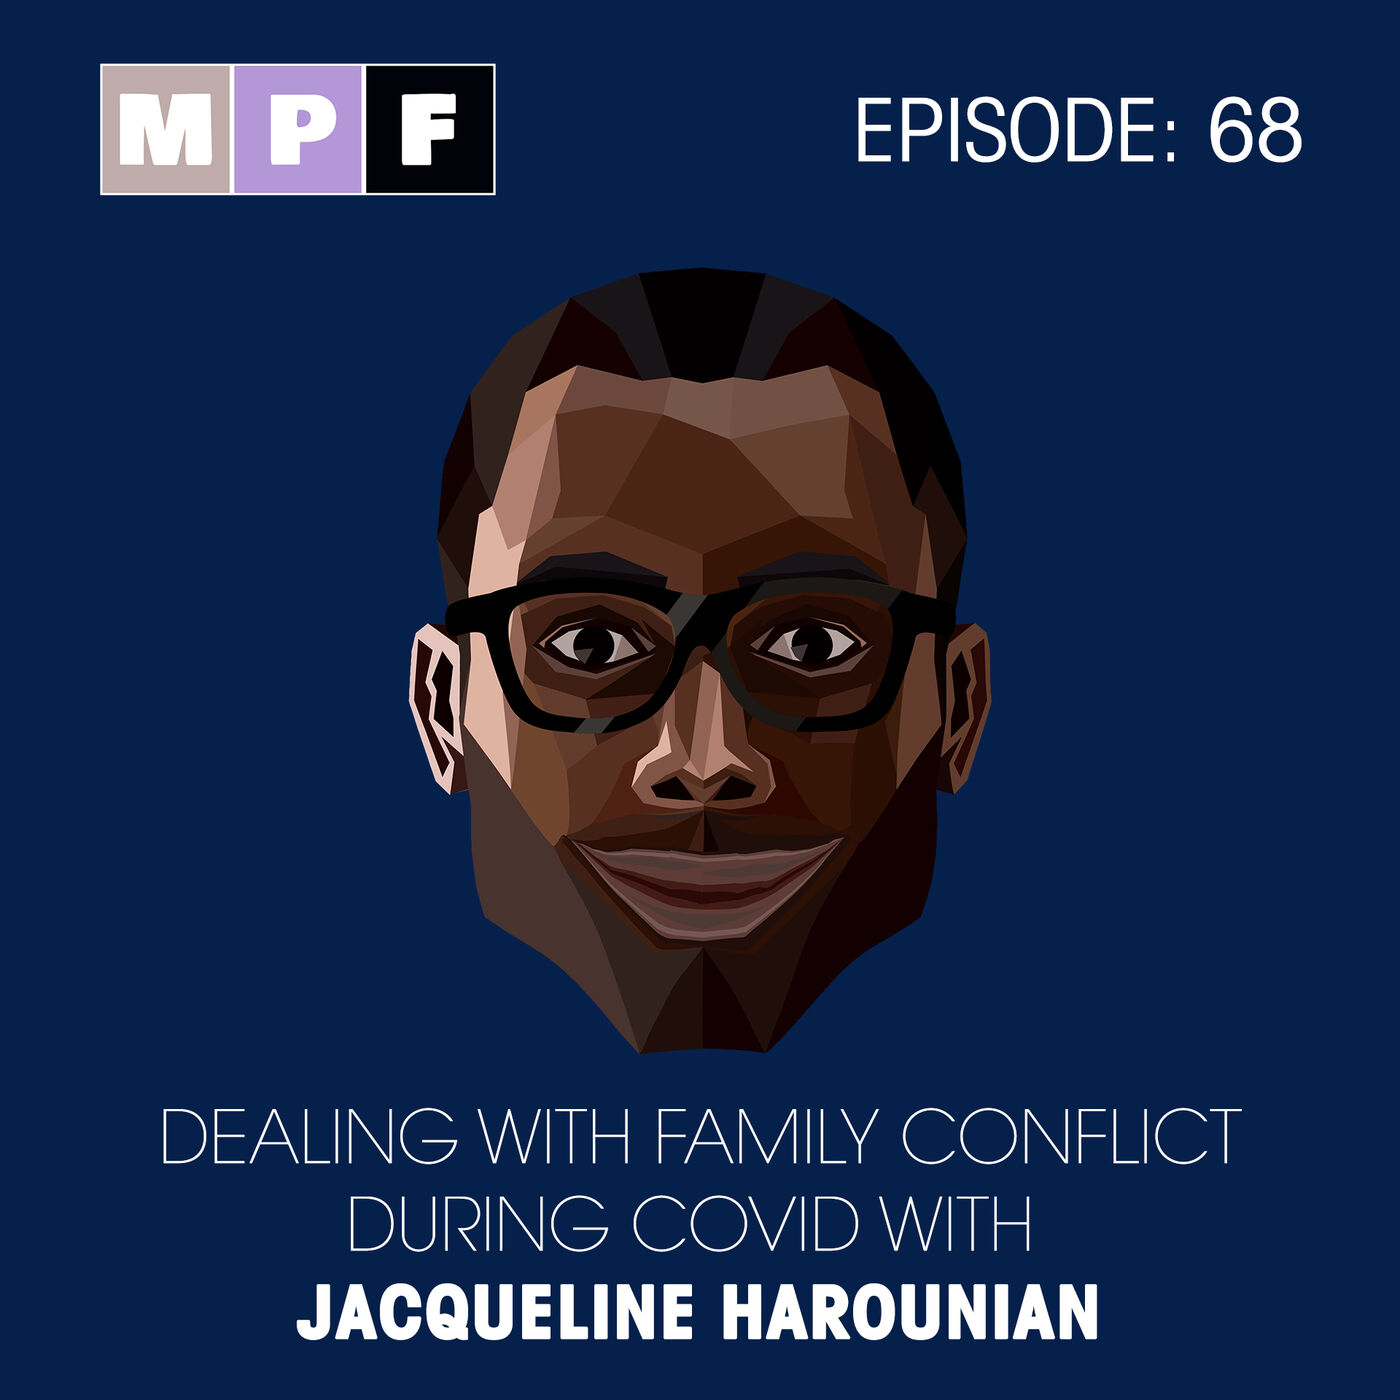 Dealing with Family Conflict During COVID  Jacqueline Harounian